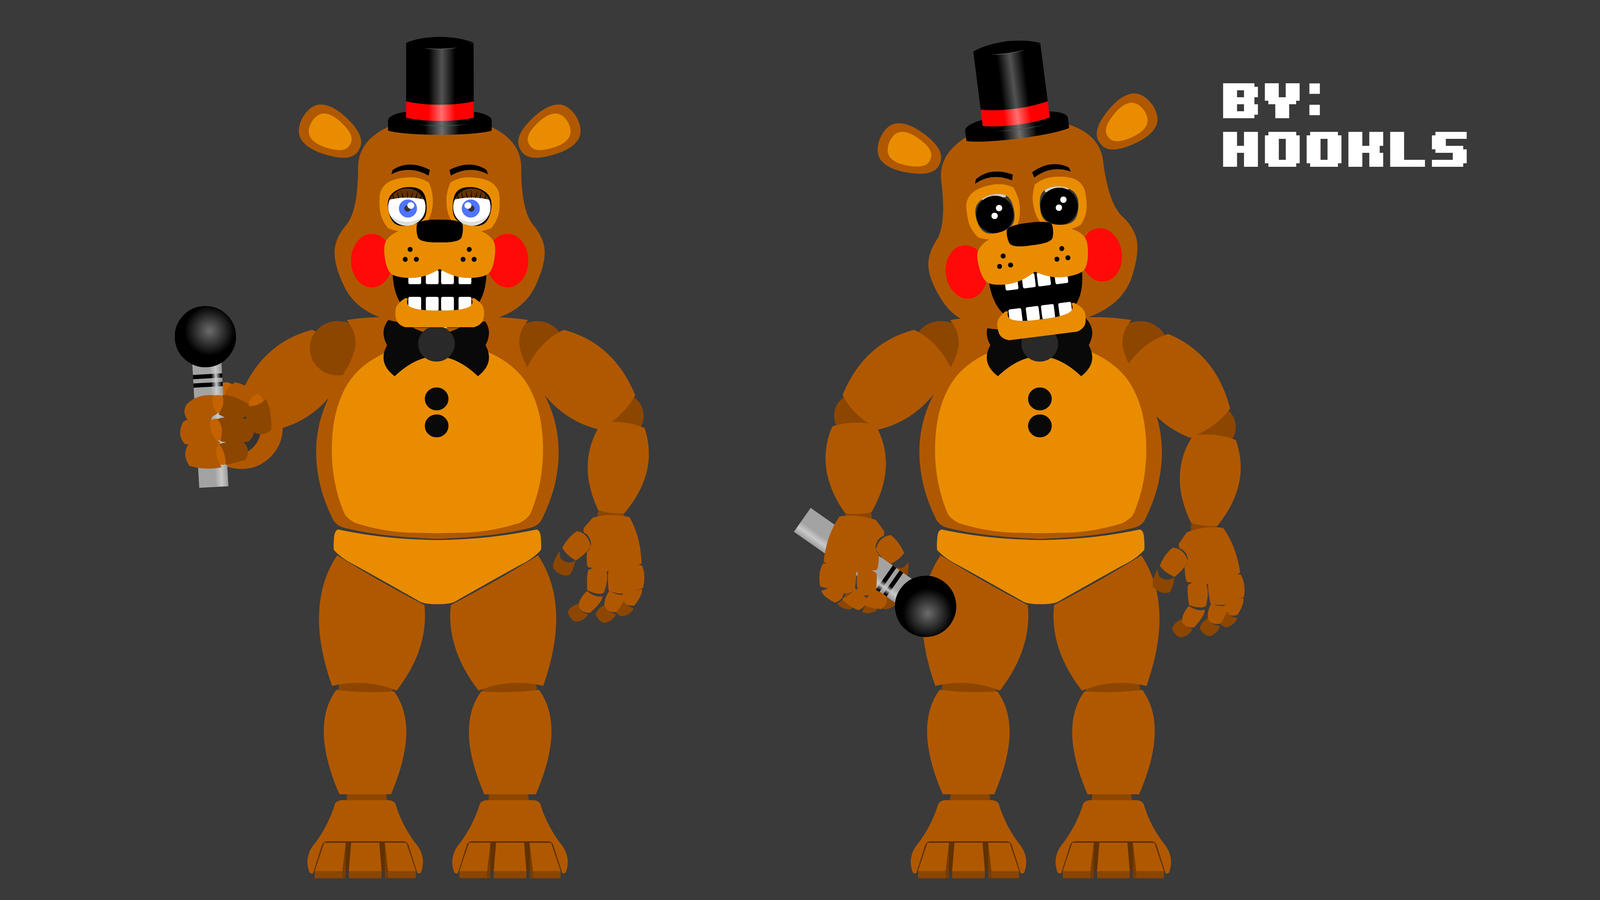 Old Freddy Toys : Toy freddy by hookls on deviantart